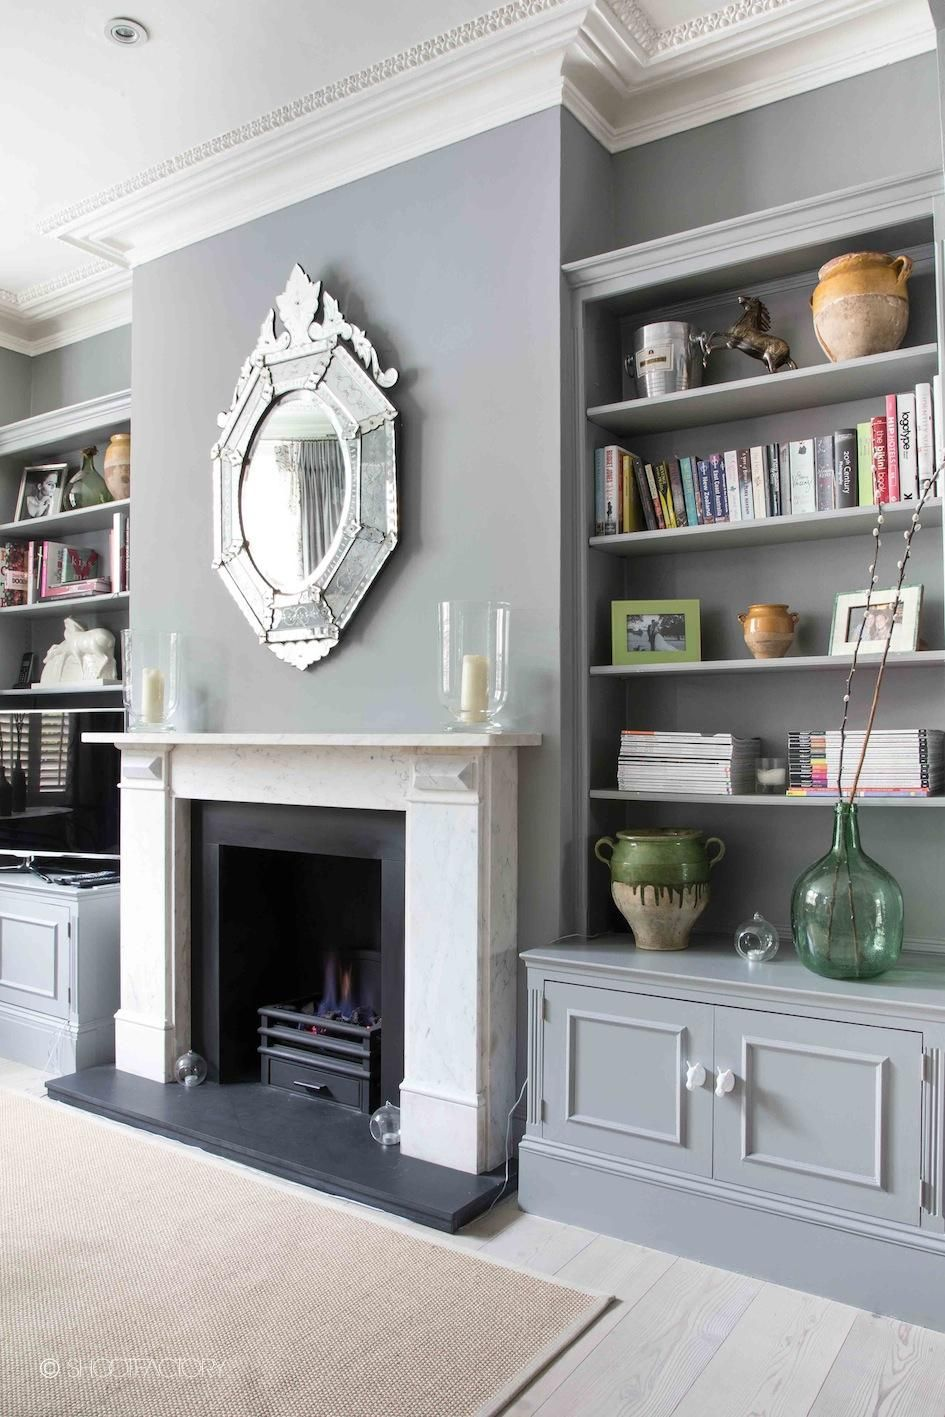 When A Room Looks Dark And With No Focus, Add A Fireplace To Bring A Centre.